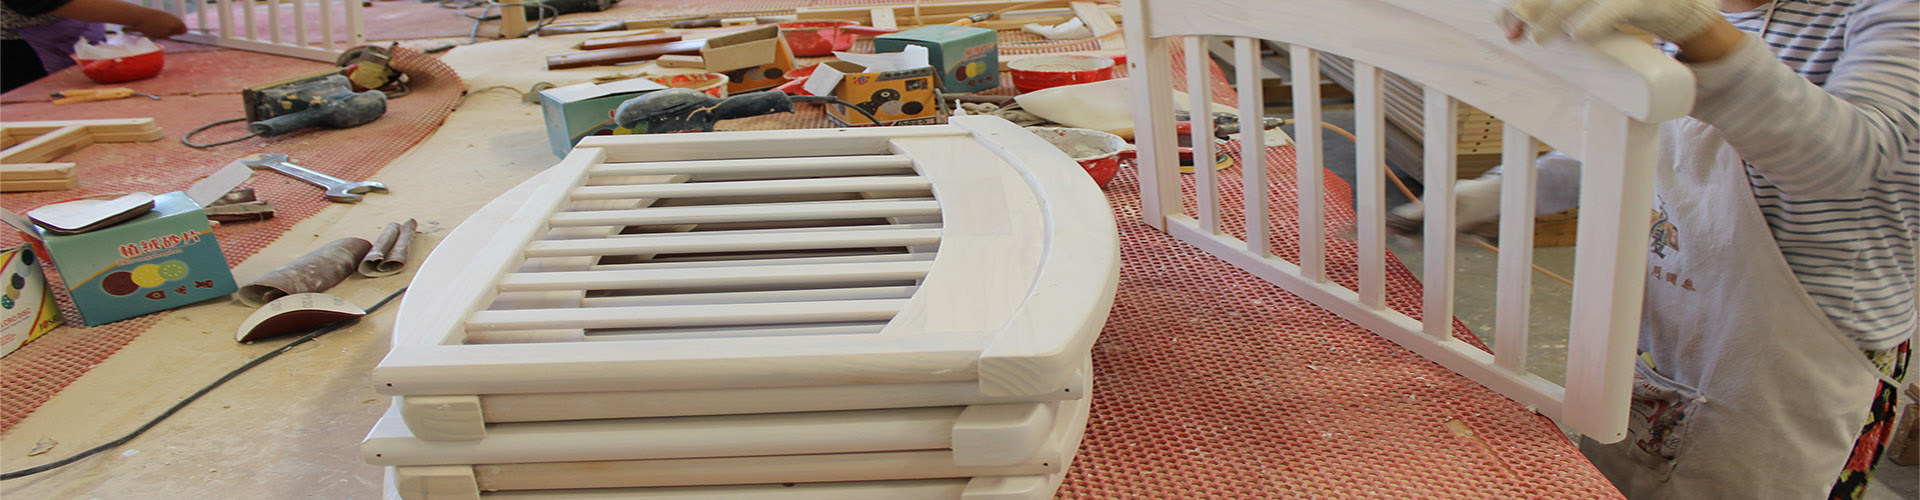 producing baby cot